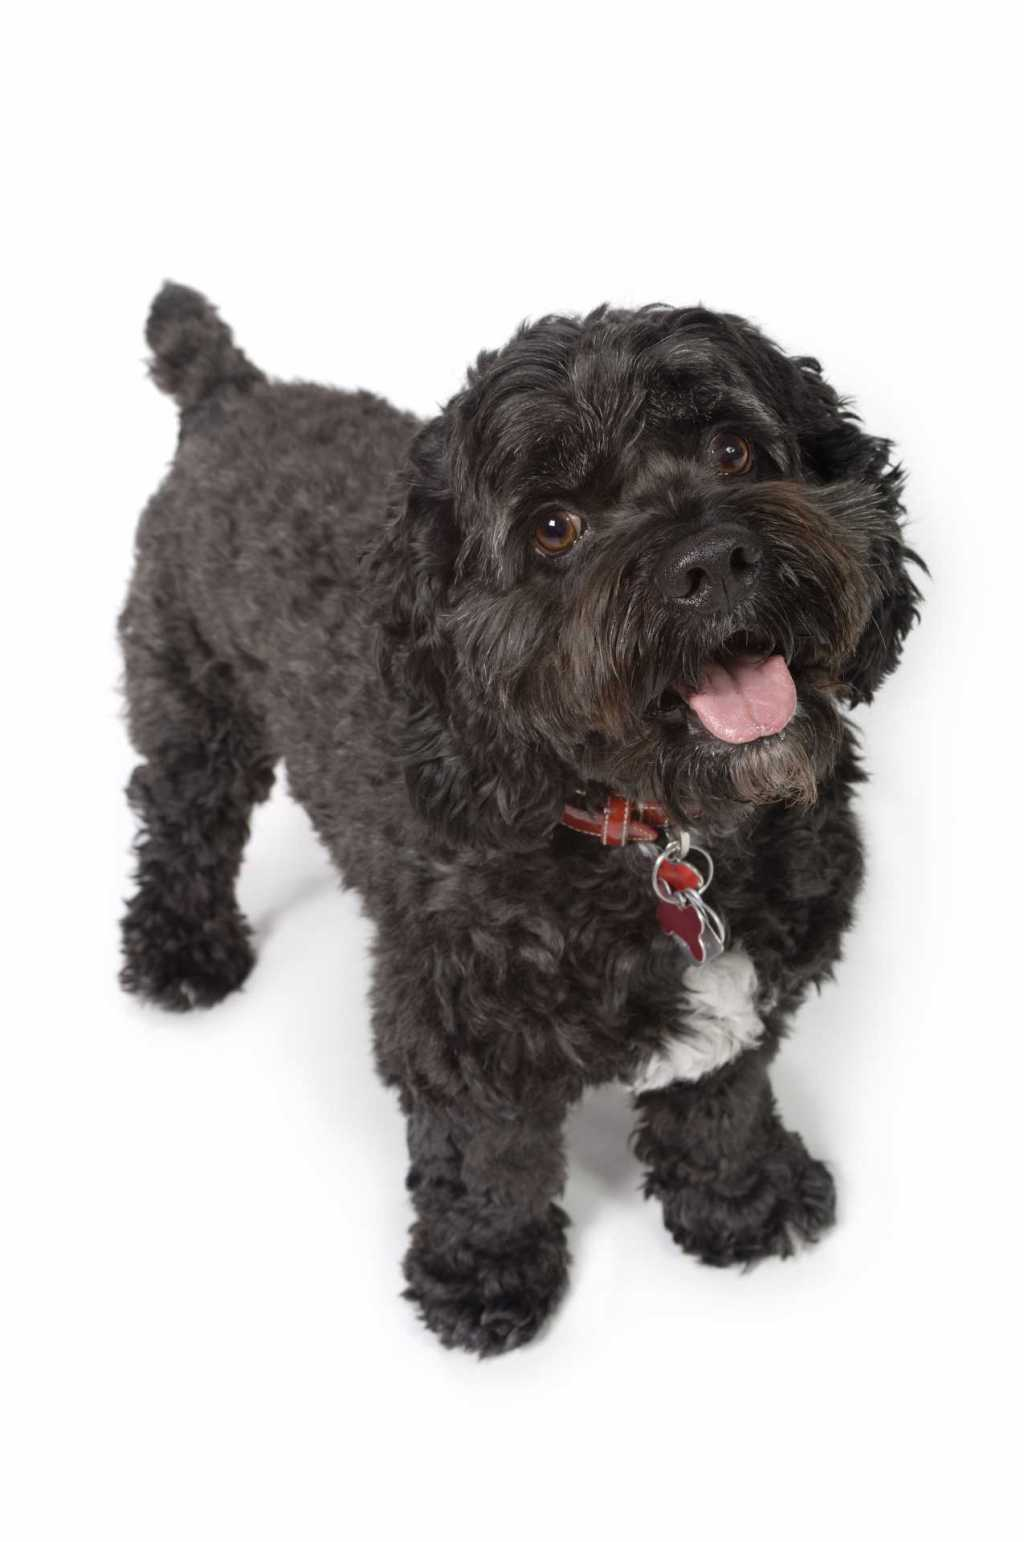 Black Bichon-Cocker Spaniel dog